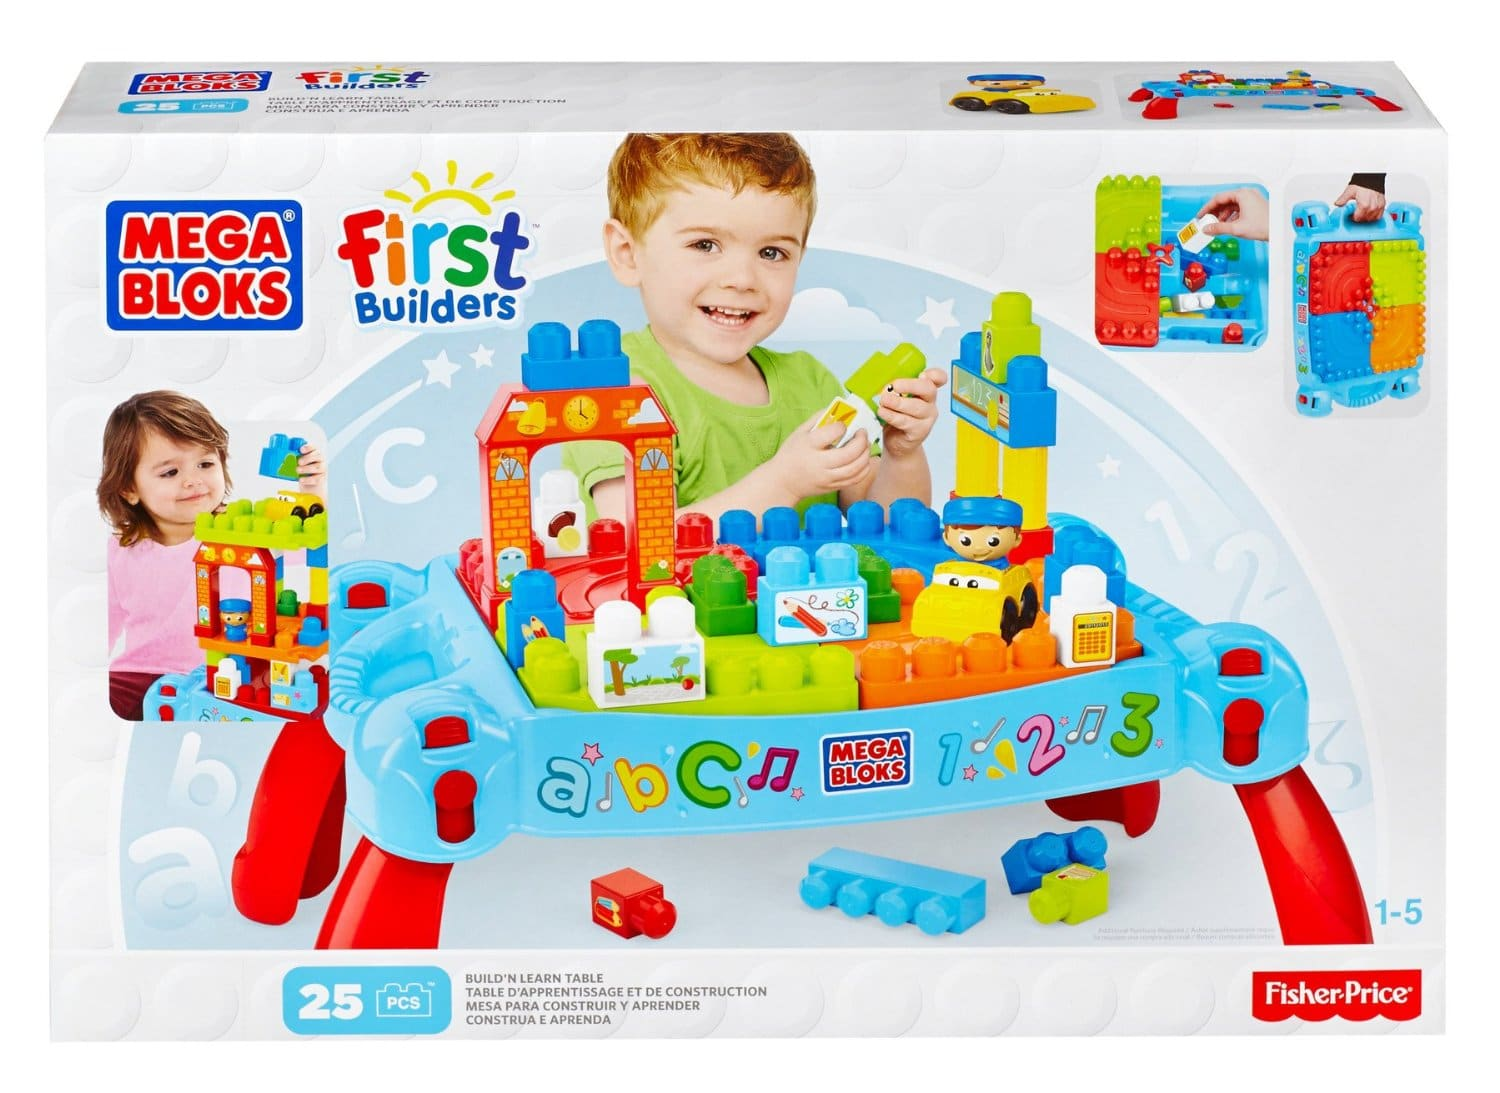 Top 10 Best Mega Blocks Builder Sets For Kids2019 Review